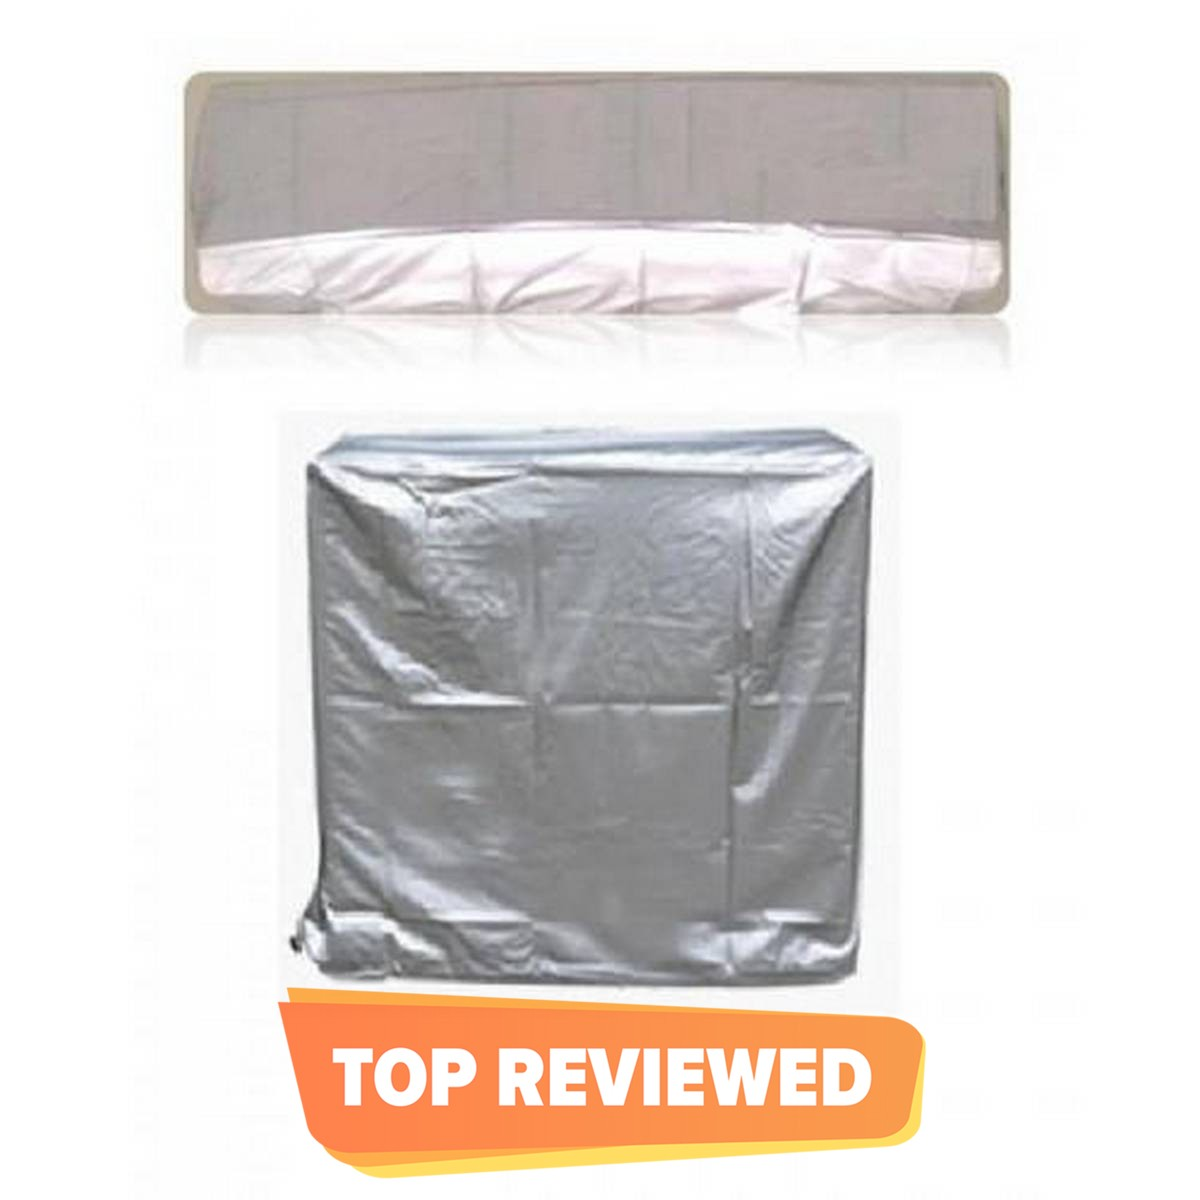 AC Dust Cover For Indoor & Outdoor Unit - Silver 1.5 Ton